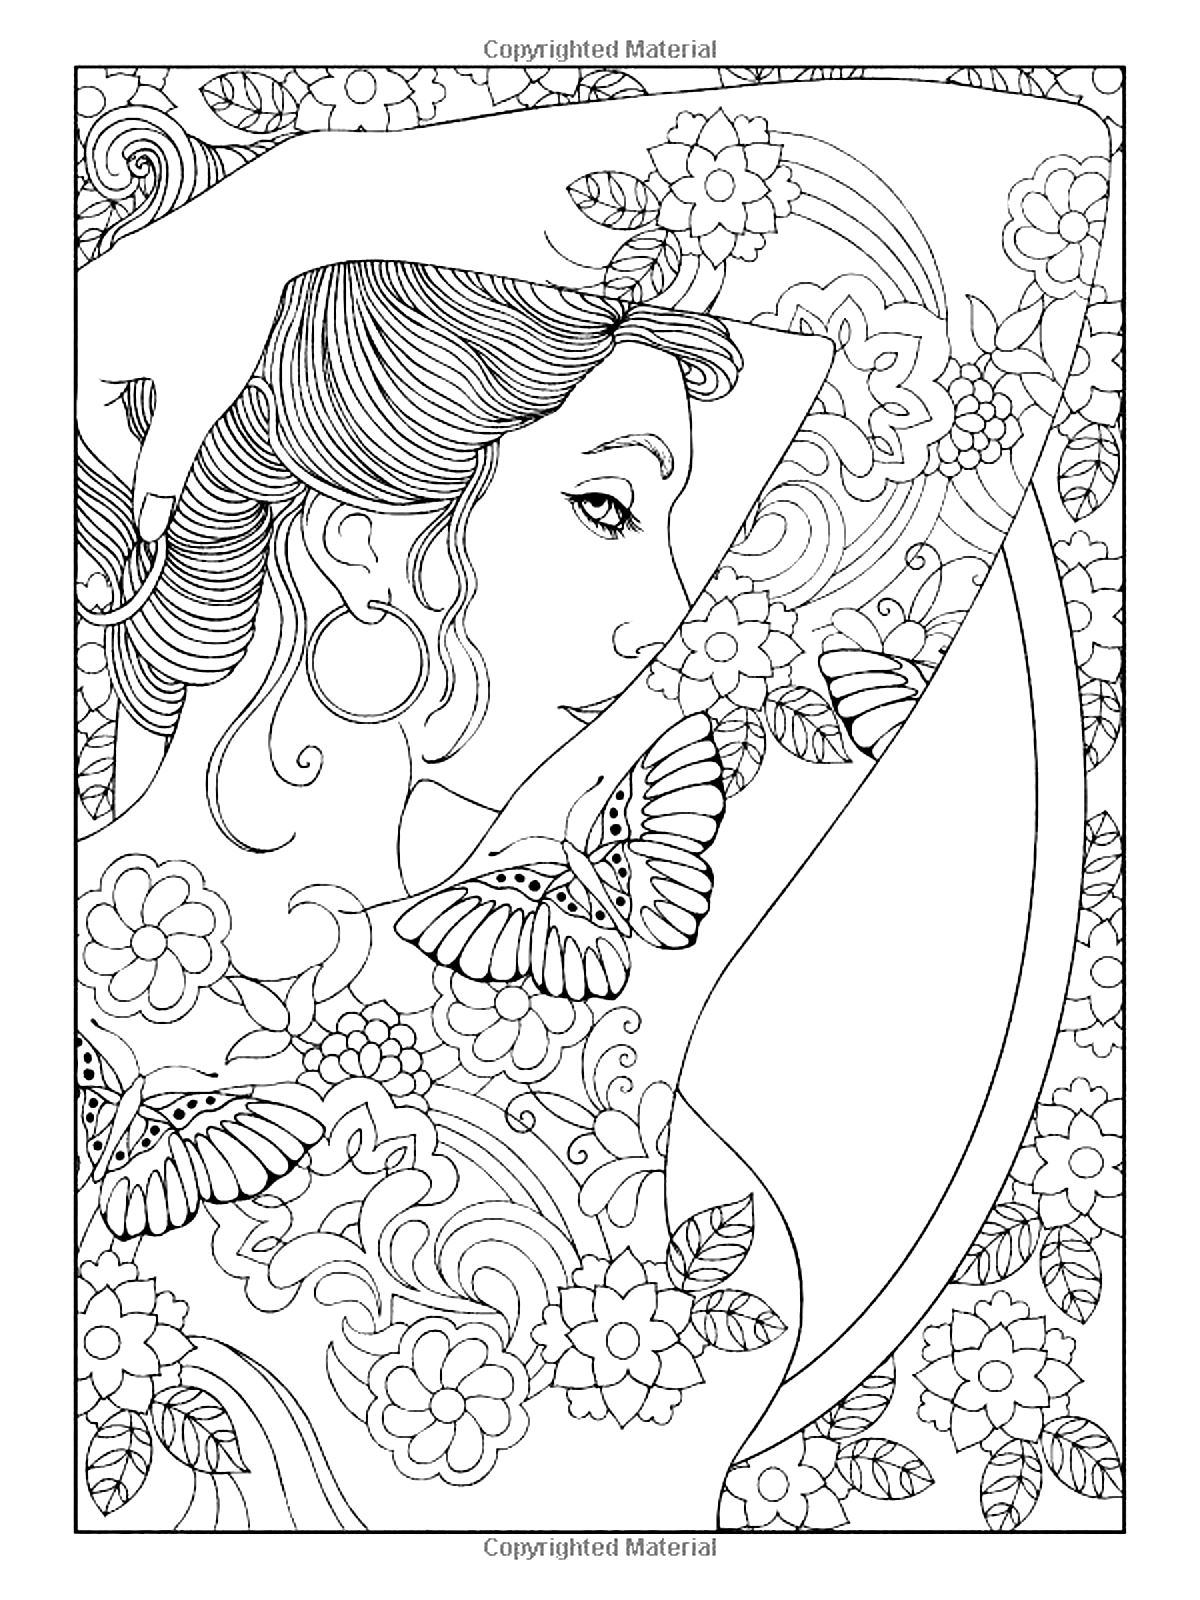 tattoo coloring pages printable 238 best images about pin up girls embroidery patterns on tattoo pages printable coloring